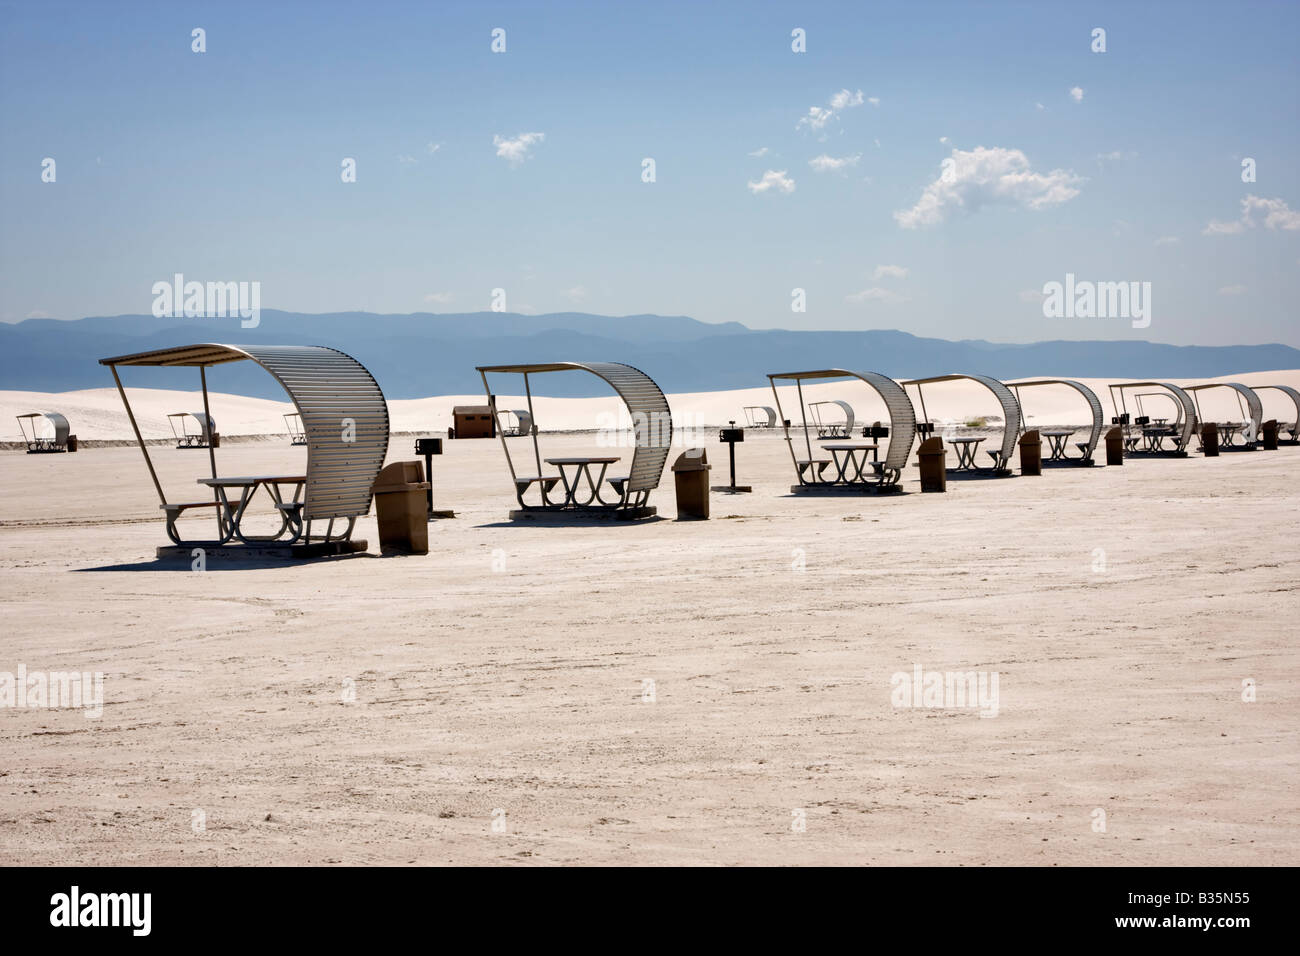 Picnic area, White Sands National Monument, New Mexico - Stock Image